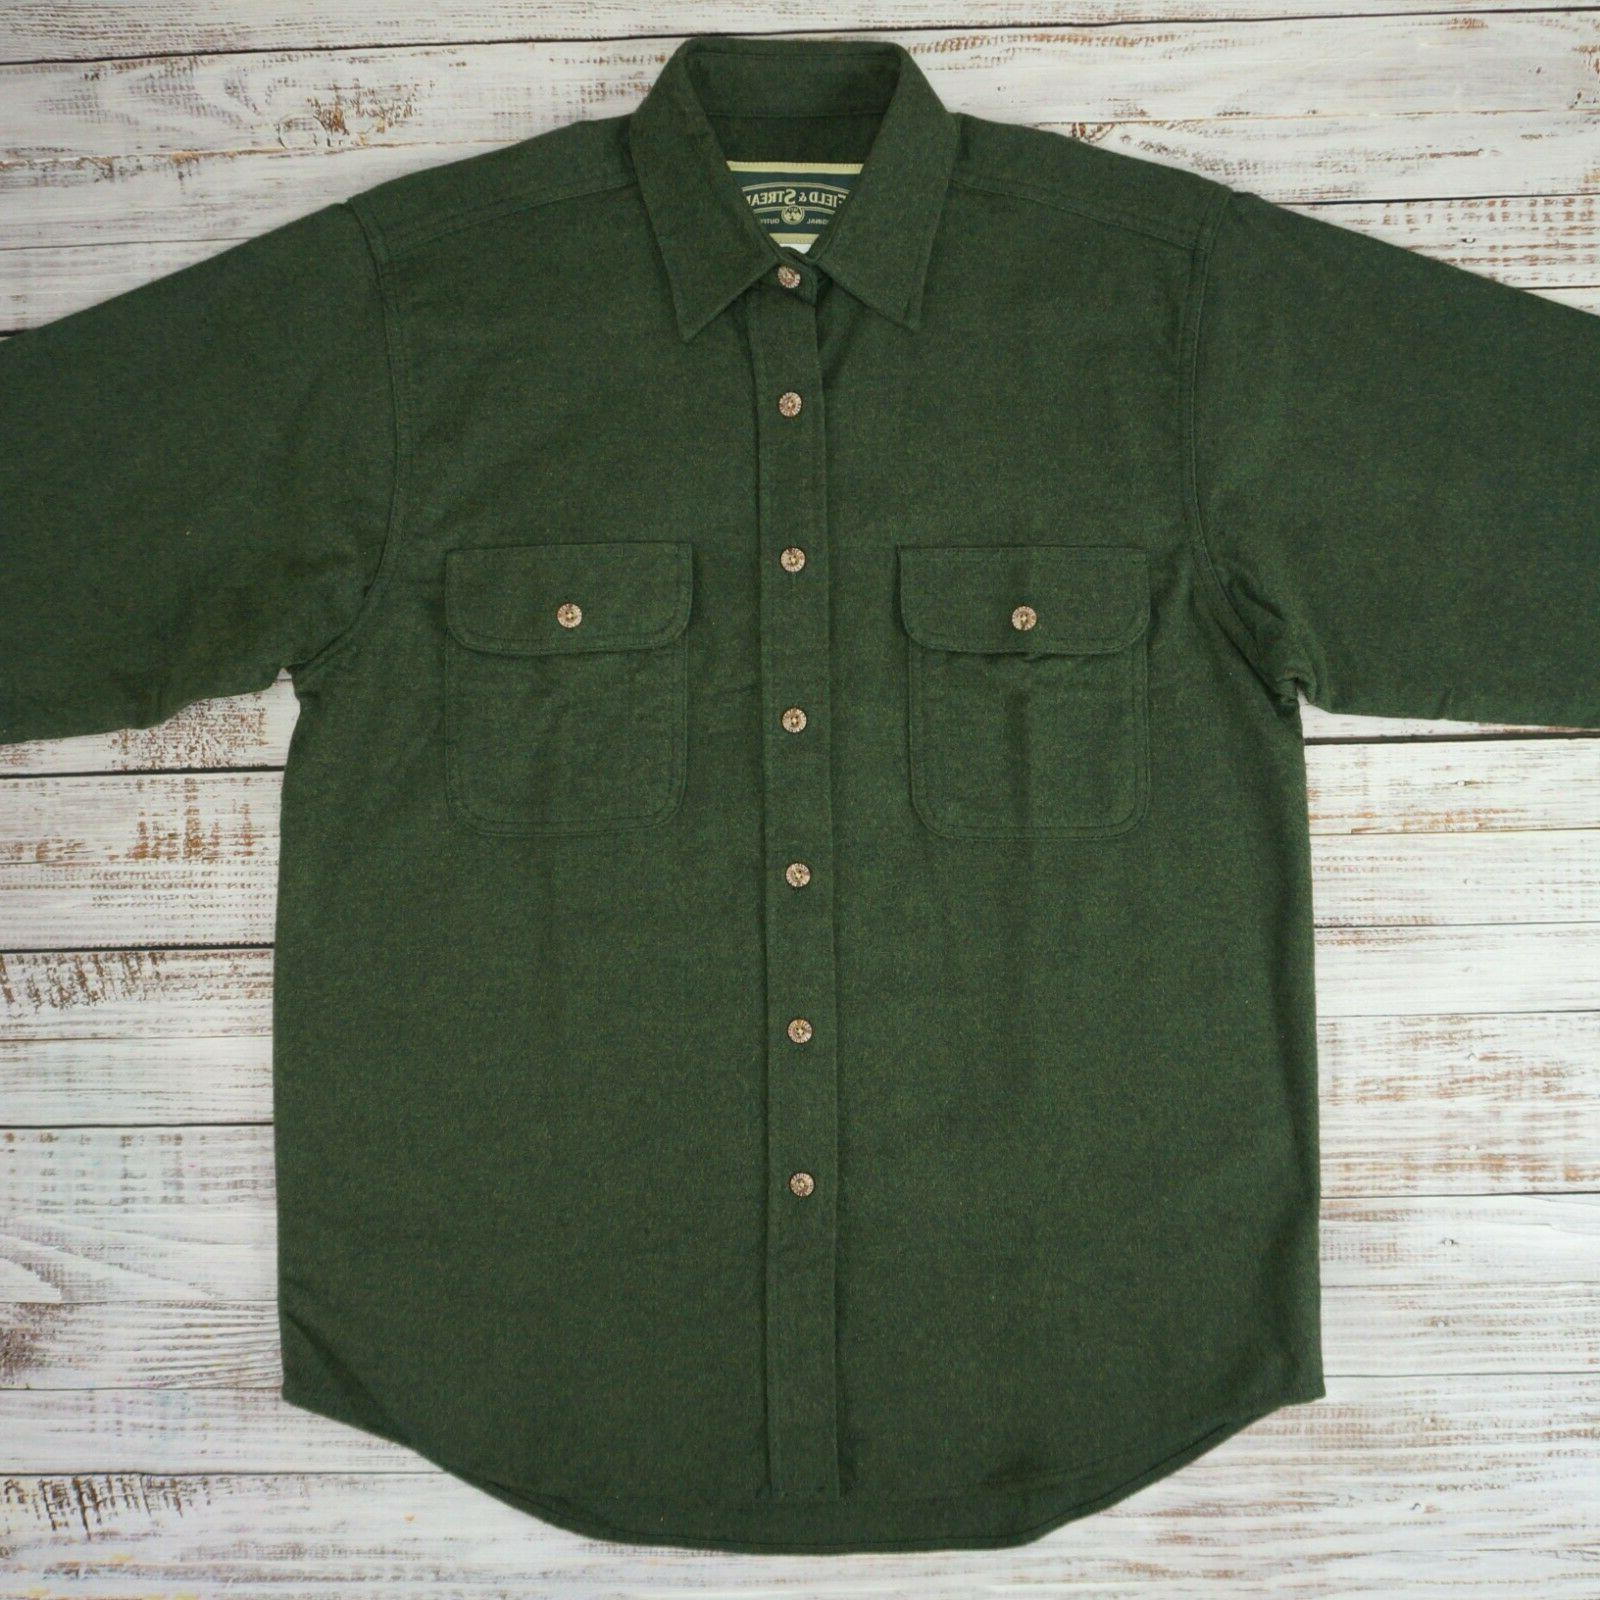 Field Shirt Green - Medium